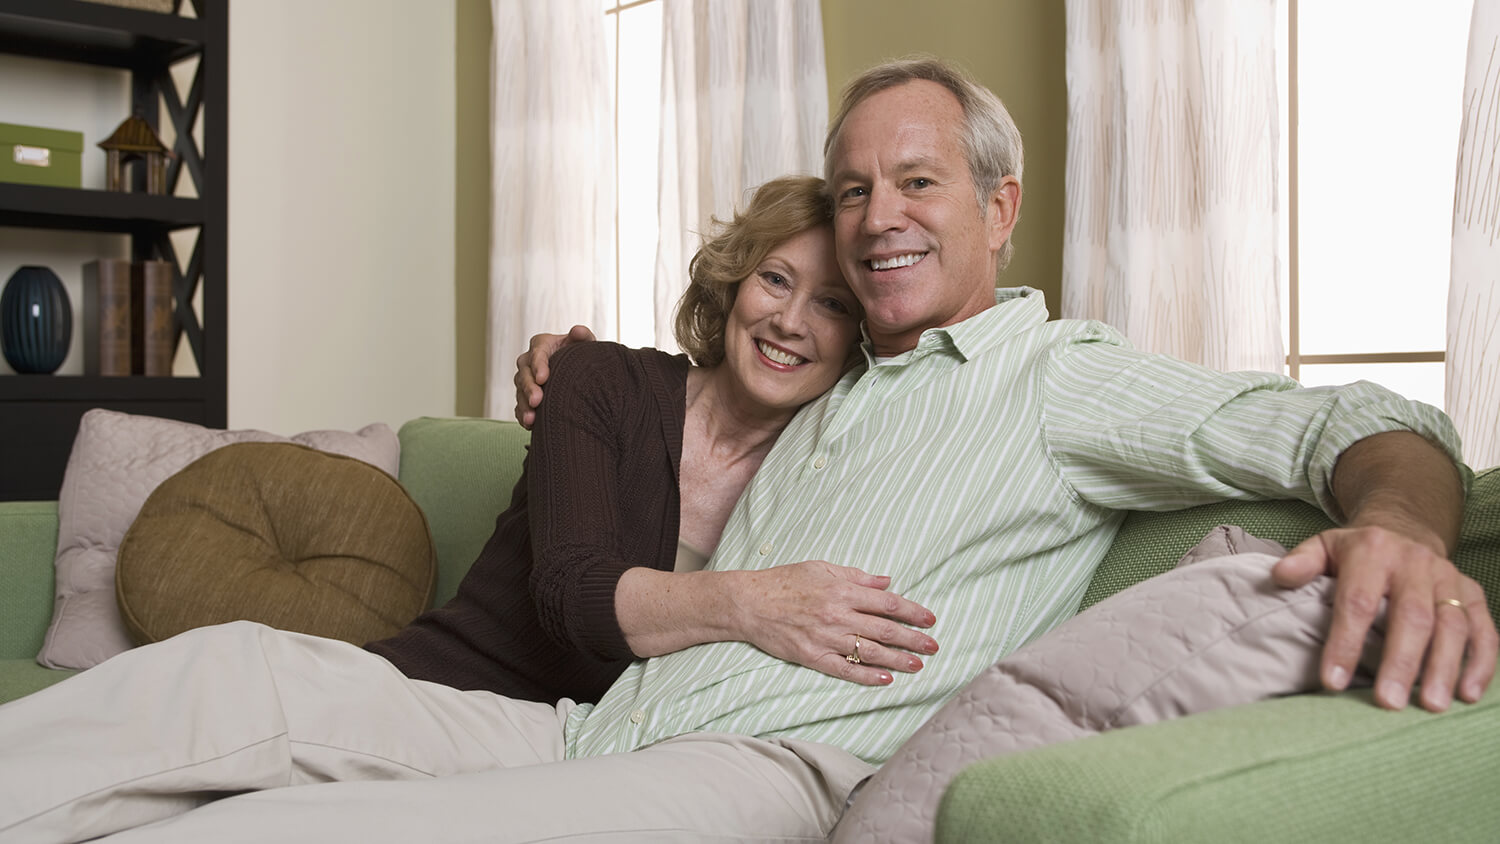 Happy middle-aged couple hugging on couch